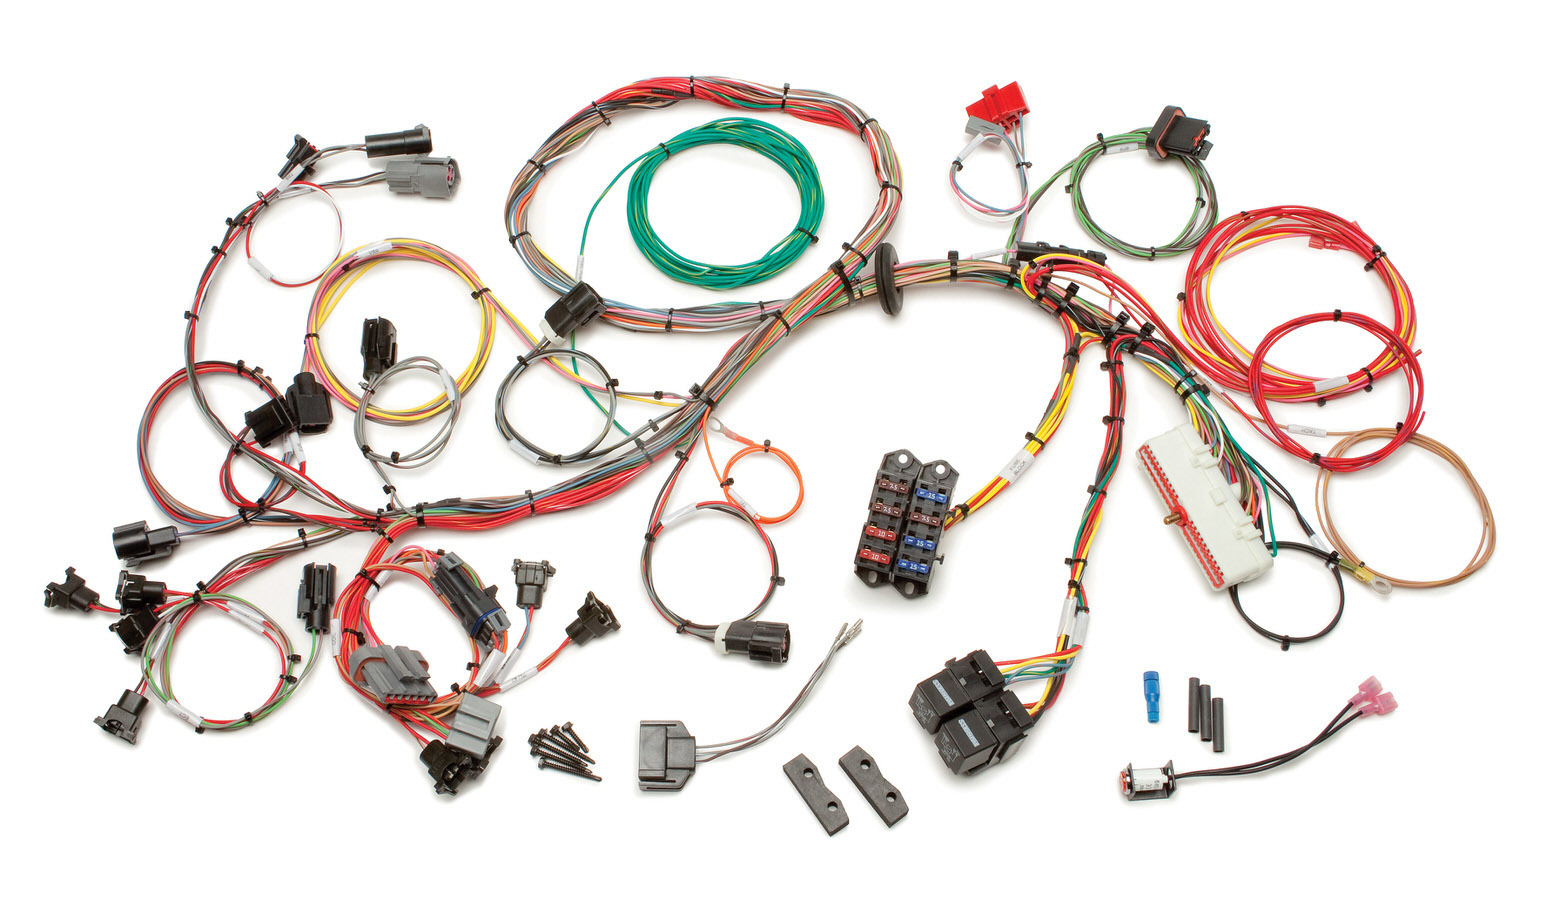 Painless Wiring 60510 EFI Wiring Harness, 5.0 L, Small Block Ford 1986-95, Kit